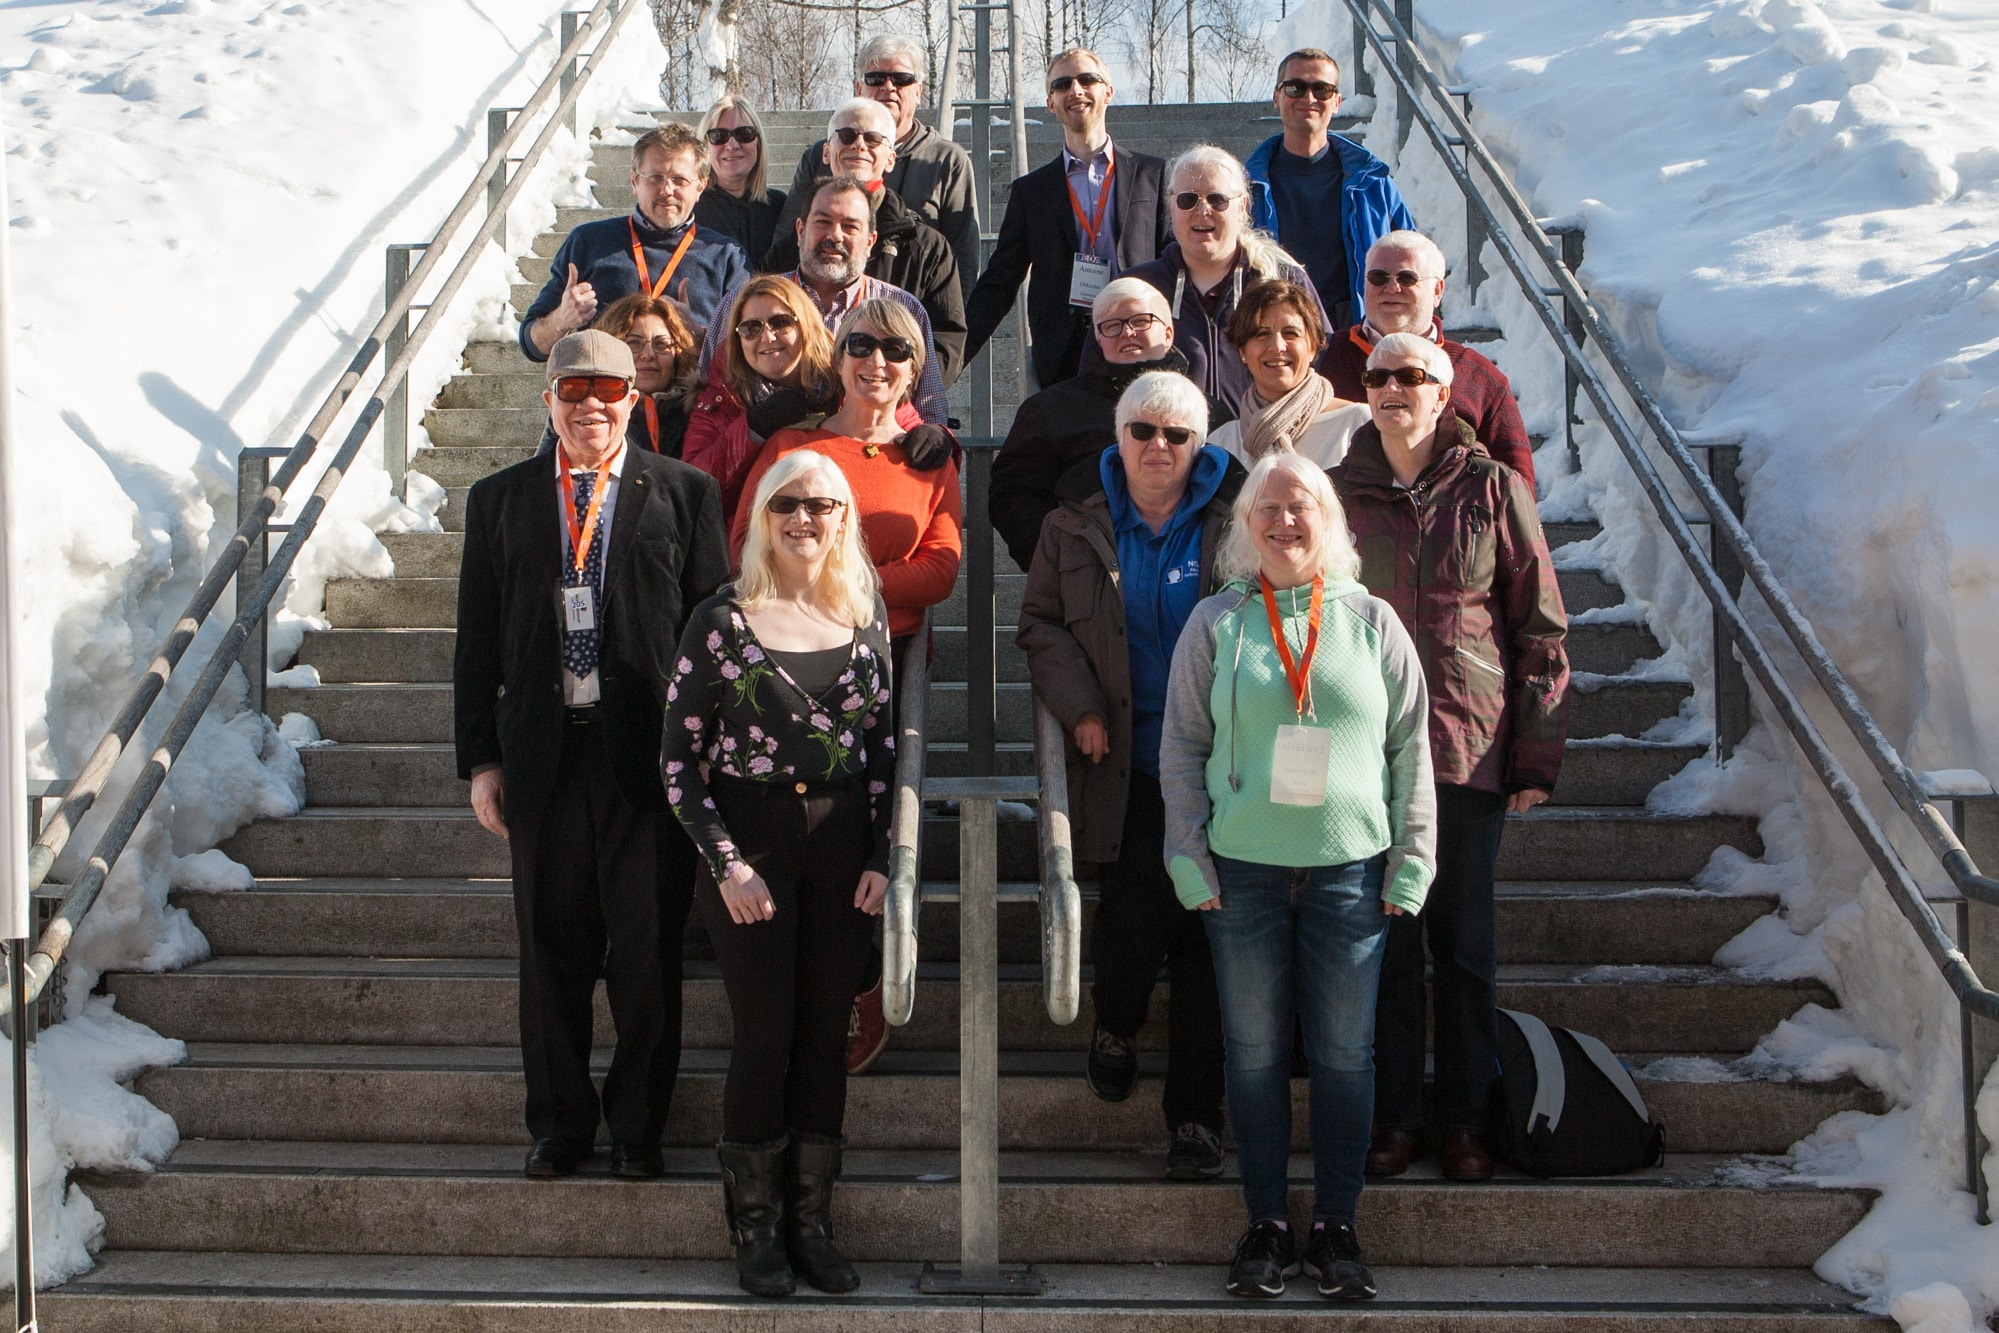 Representatives from different European associations for people with albinism